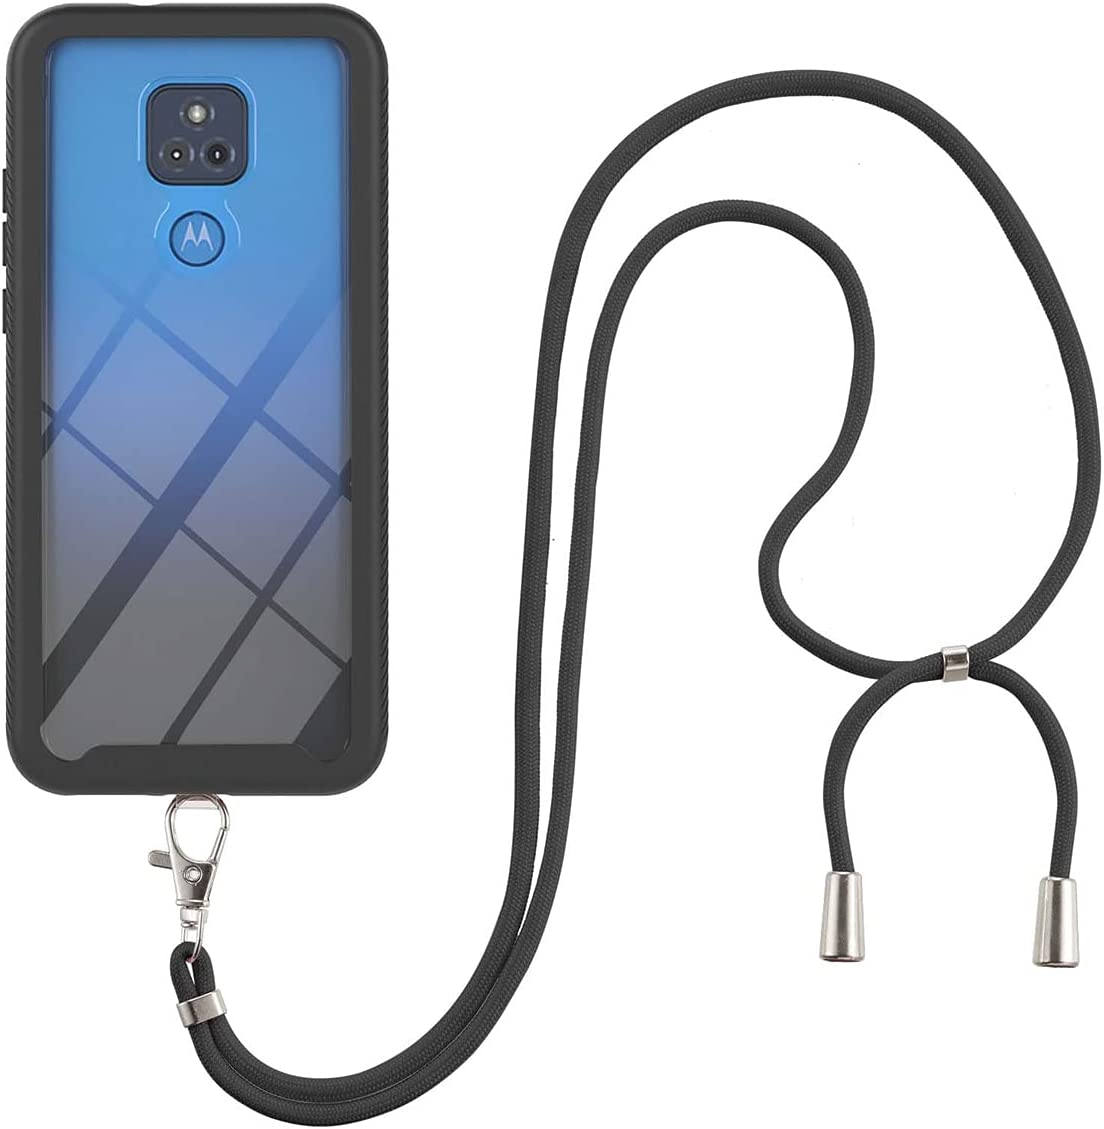 Moto G Play (2021) Case, Gift_Source Slim Shockproof Crossbody Case 2 in 1 Soft Silicone Bumper & Clear Hard PC Back Cover Shell with Lanyard Neck Strap for Motorola Moto G Play (2021) 6.5